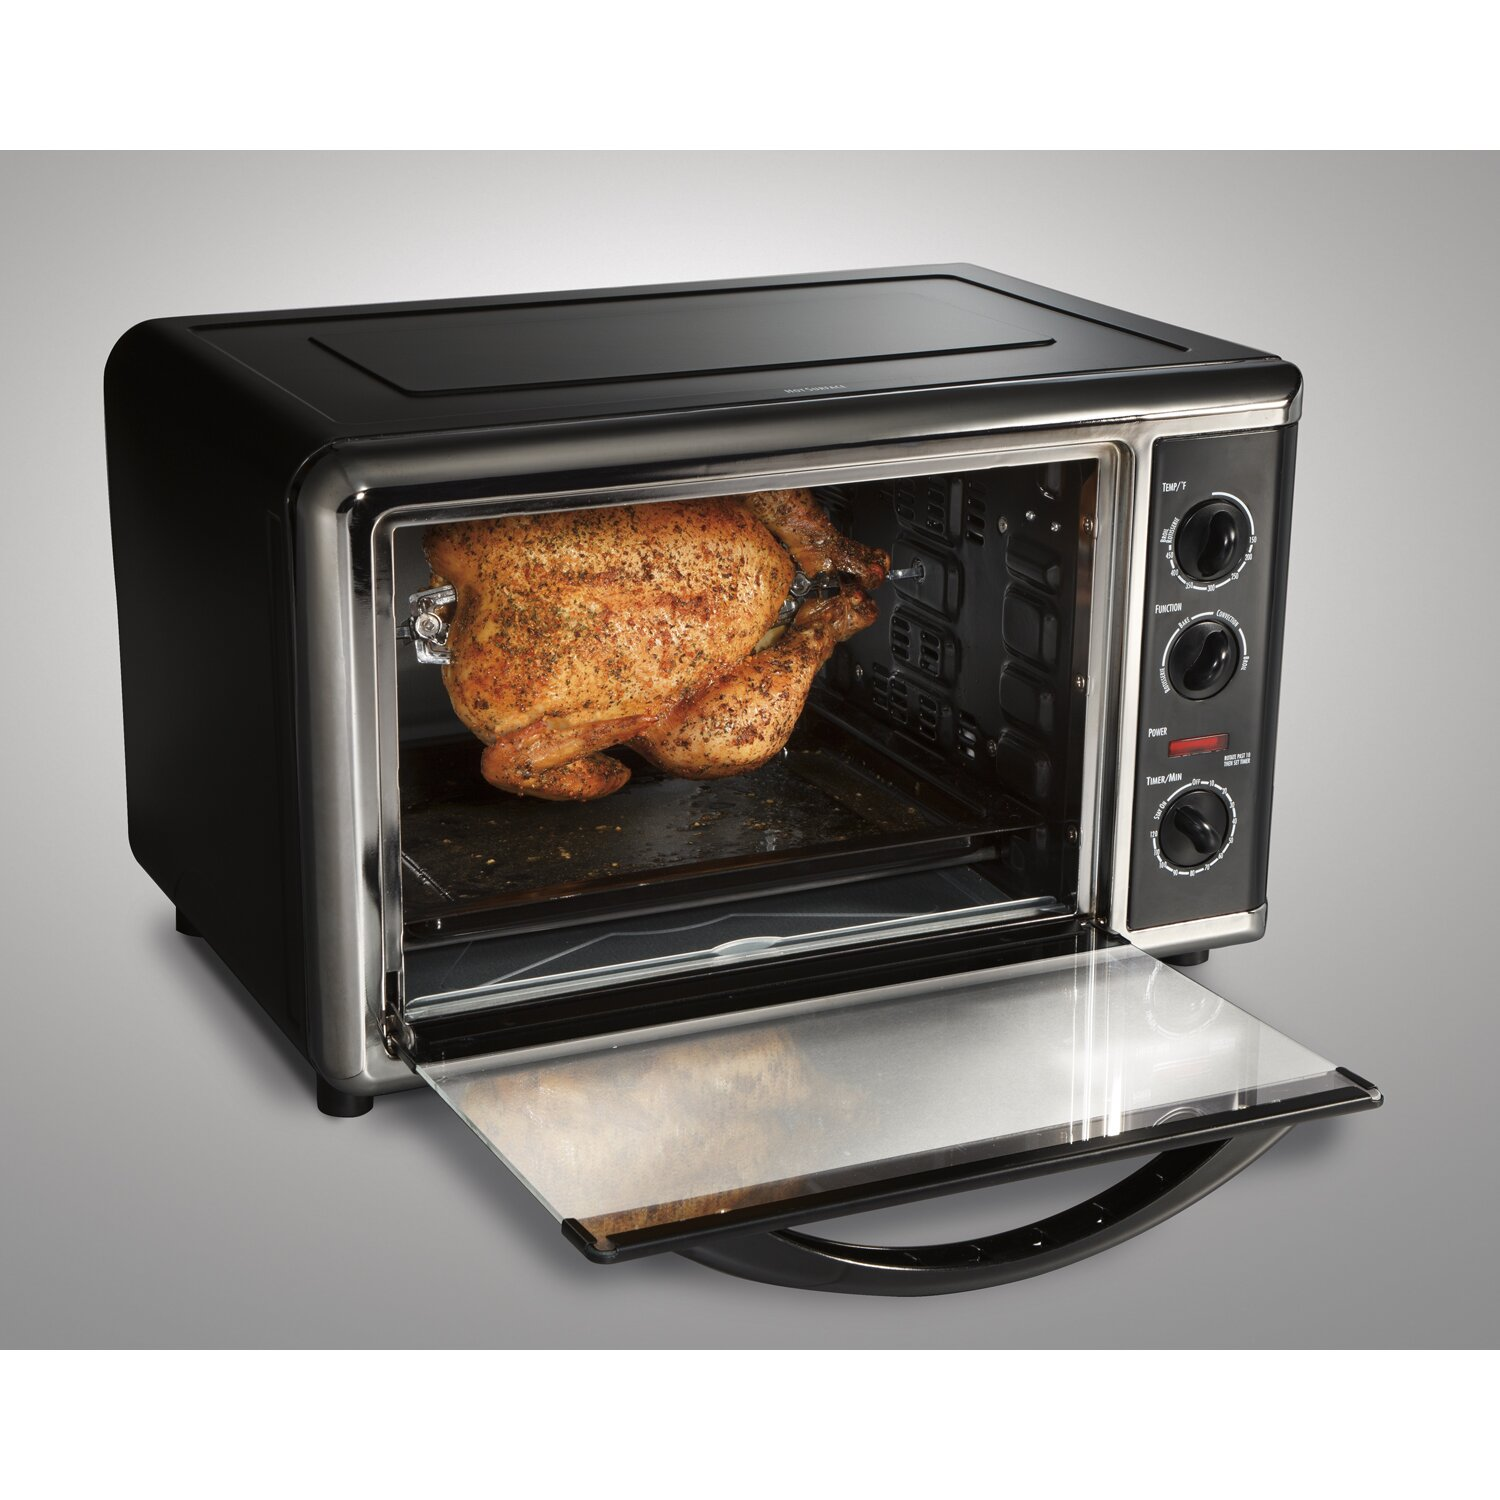 Countertop Convection Oven Ratings : ... Beach Countertop Convection & Rotisserie Oven & Reviews Wayfair